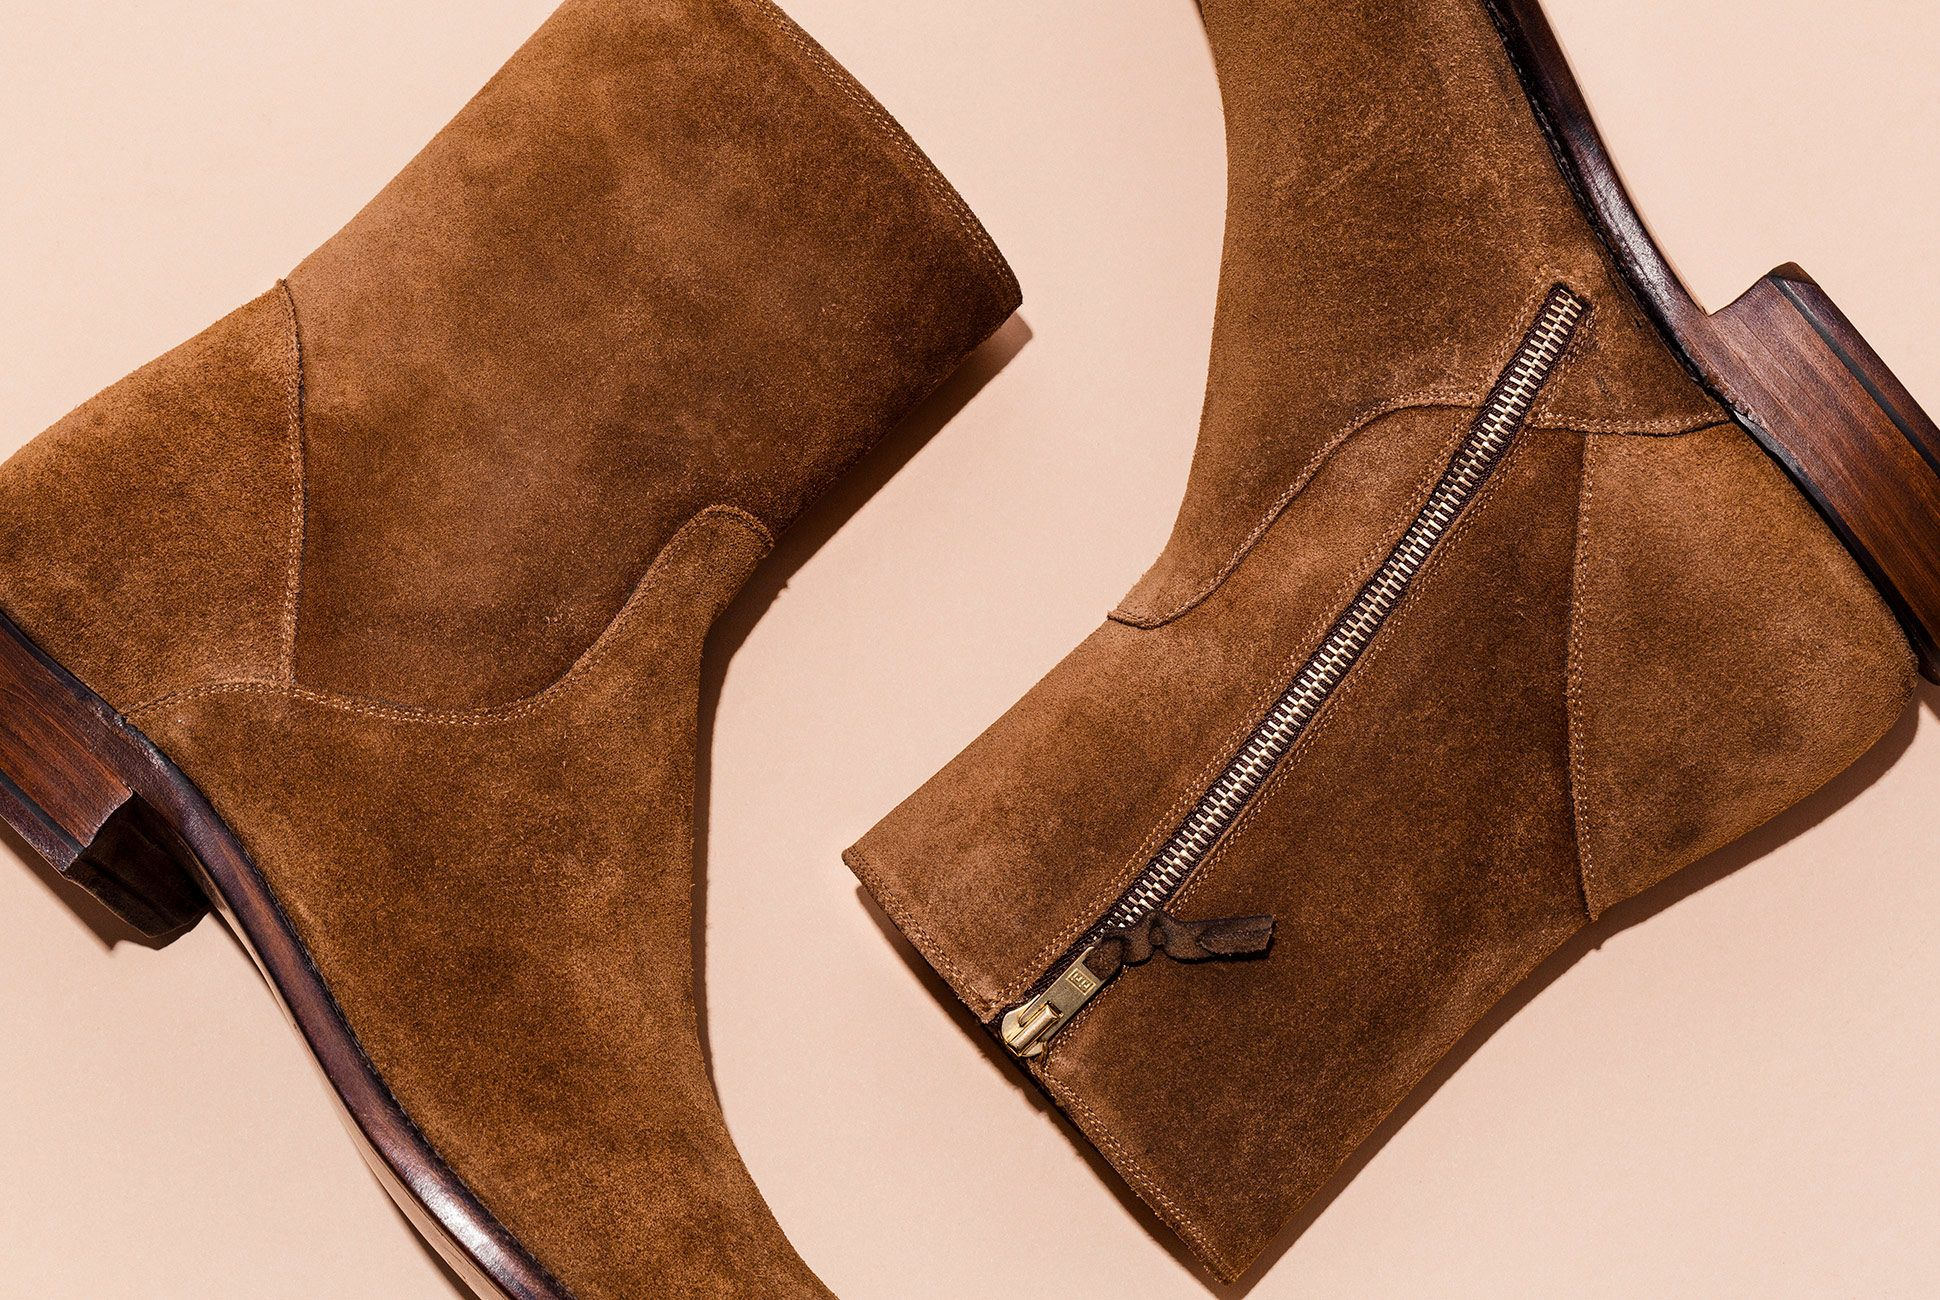 Lucchese Jonah Zip Up Boot Review These American Made Boots Are Hard To Beat Lucchese Boots American Made Boots Boots